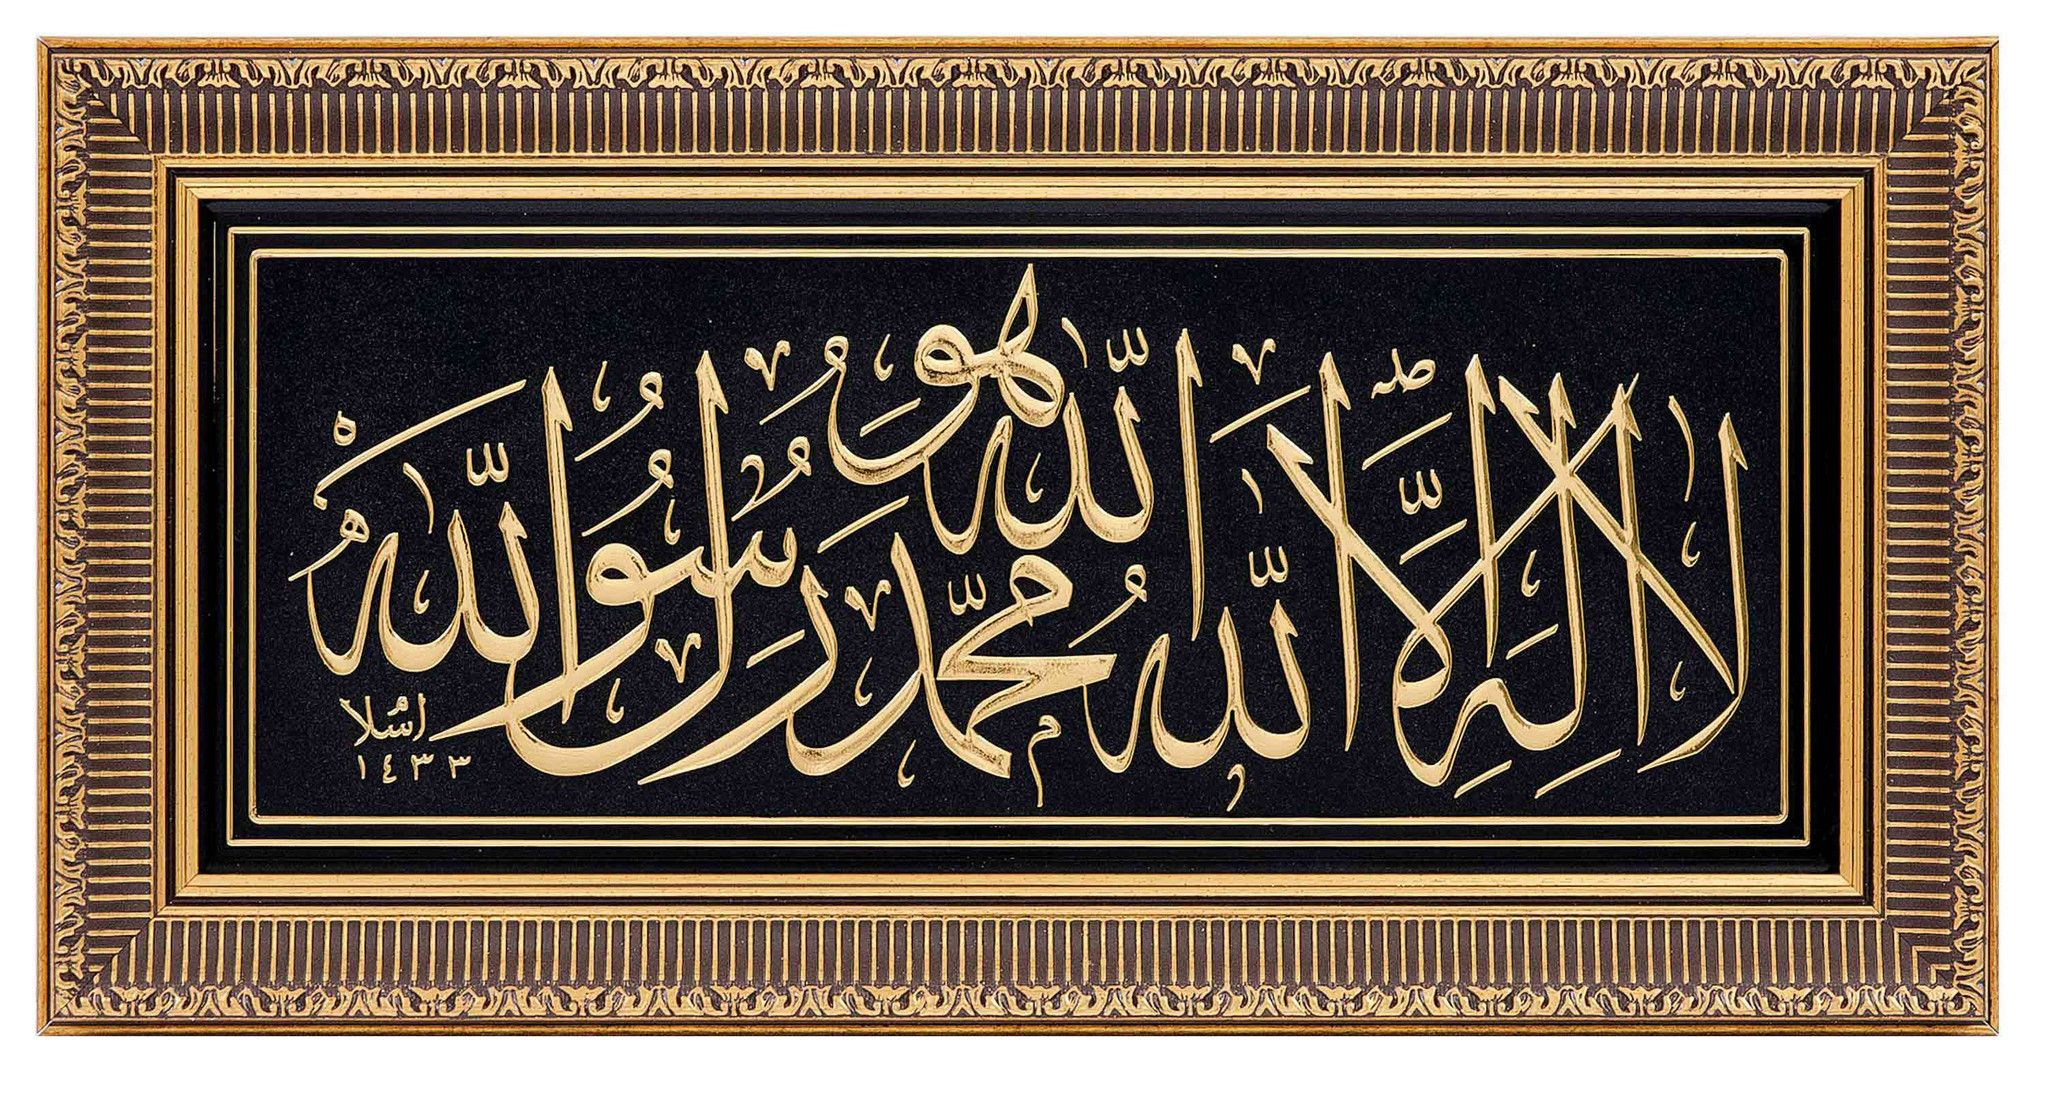 Album of ottoman calligraphy